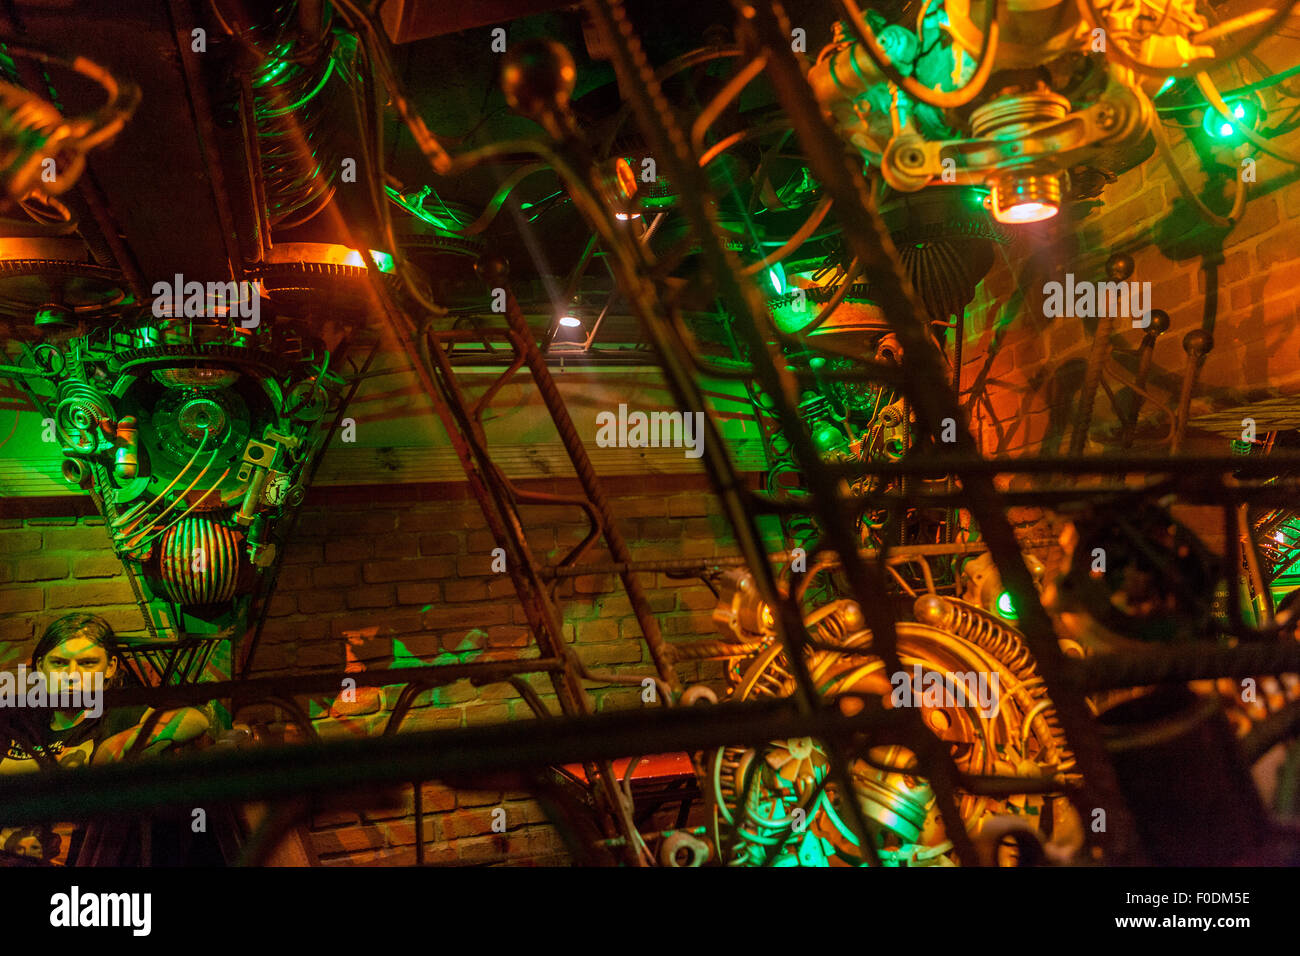 Cross Club, favorite music club, Nightlife, Prague Holesovice, Czech Republic - Stock Image